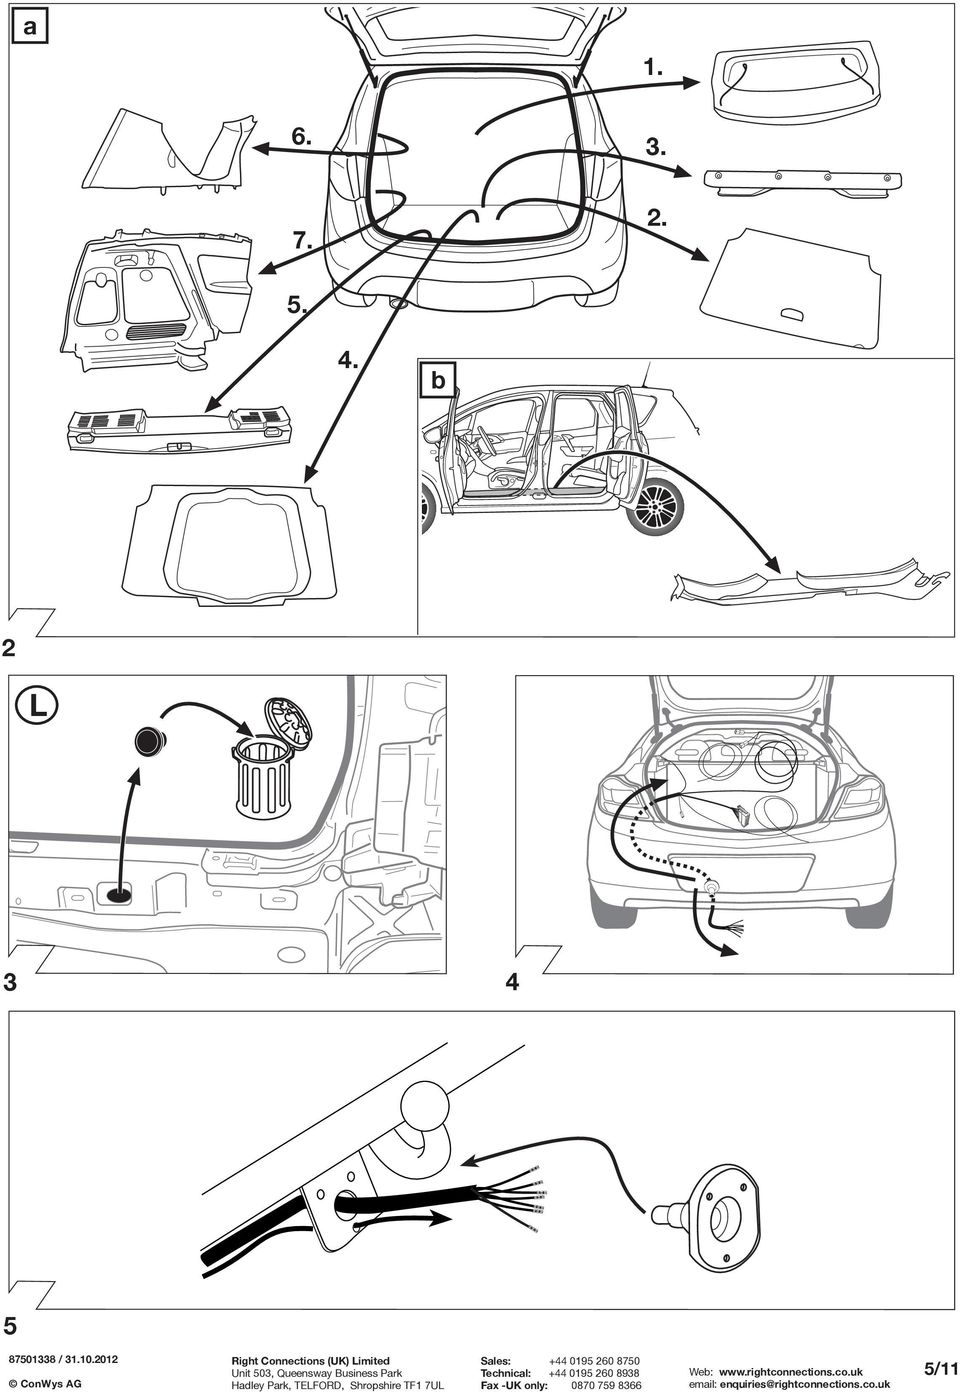 Fitting instructions part no rc vauxhall meriva b 0610 important 4 5 511 asfbconference2016 Gallery